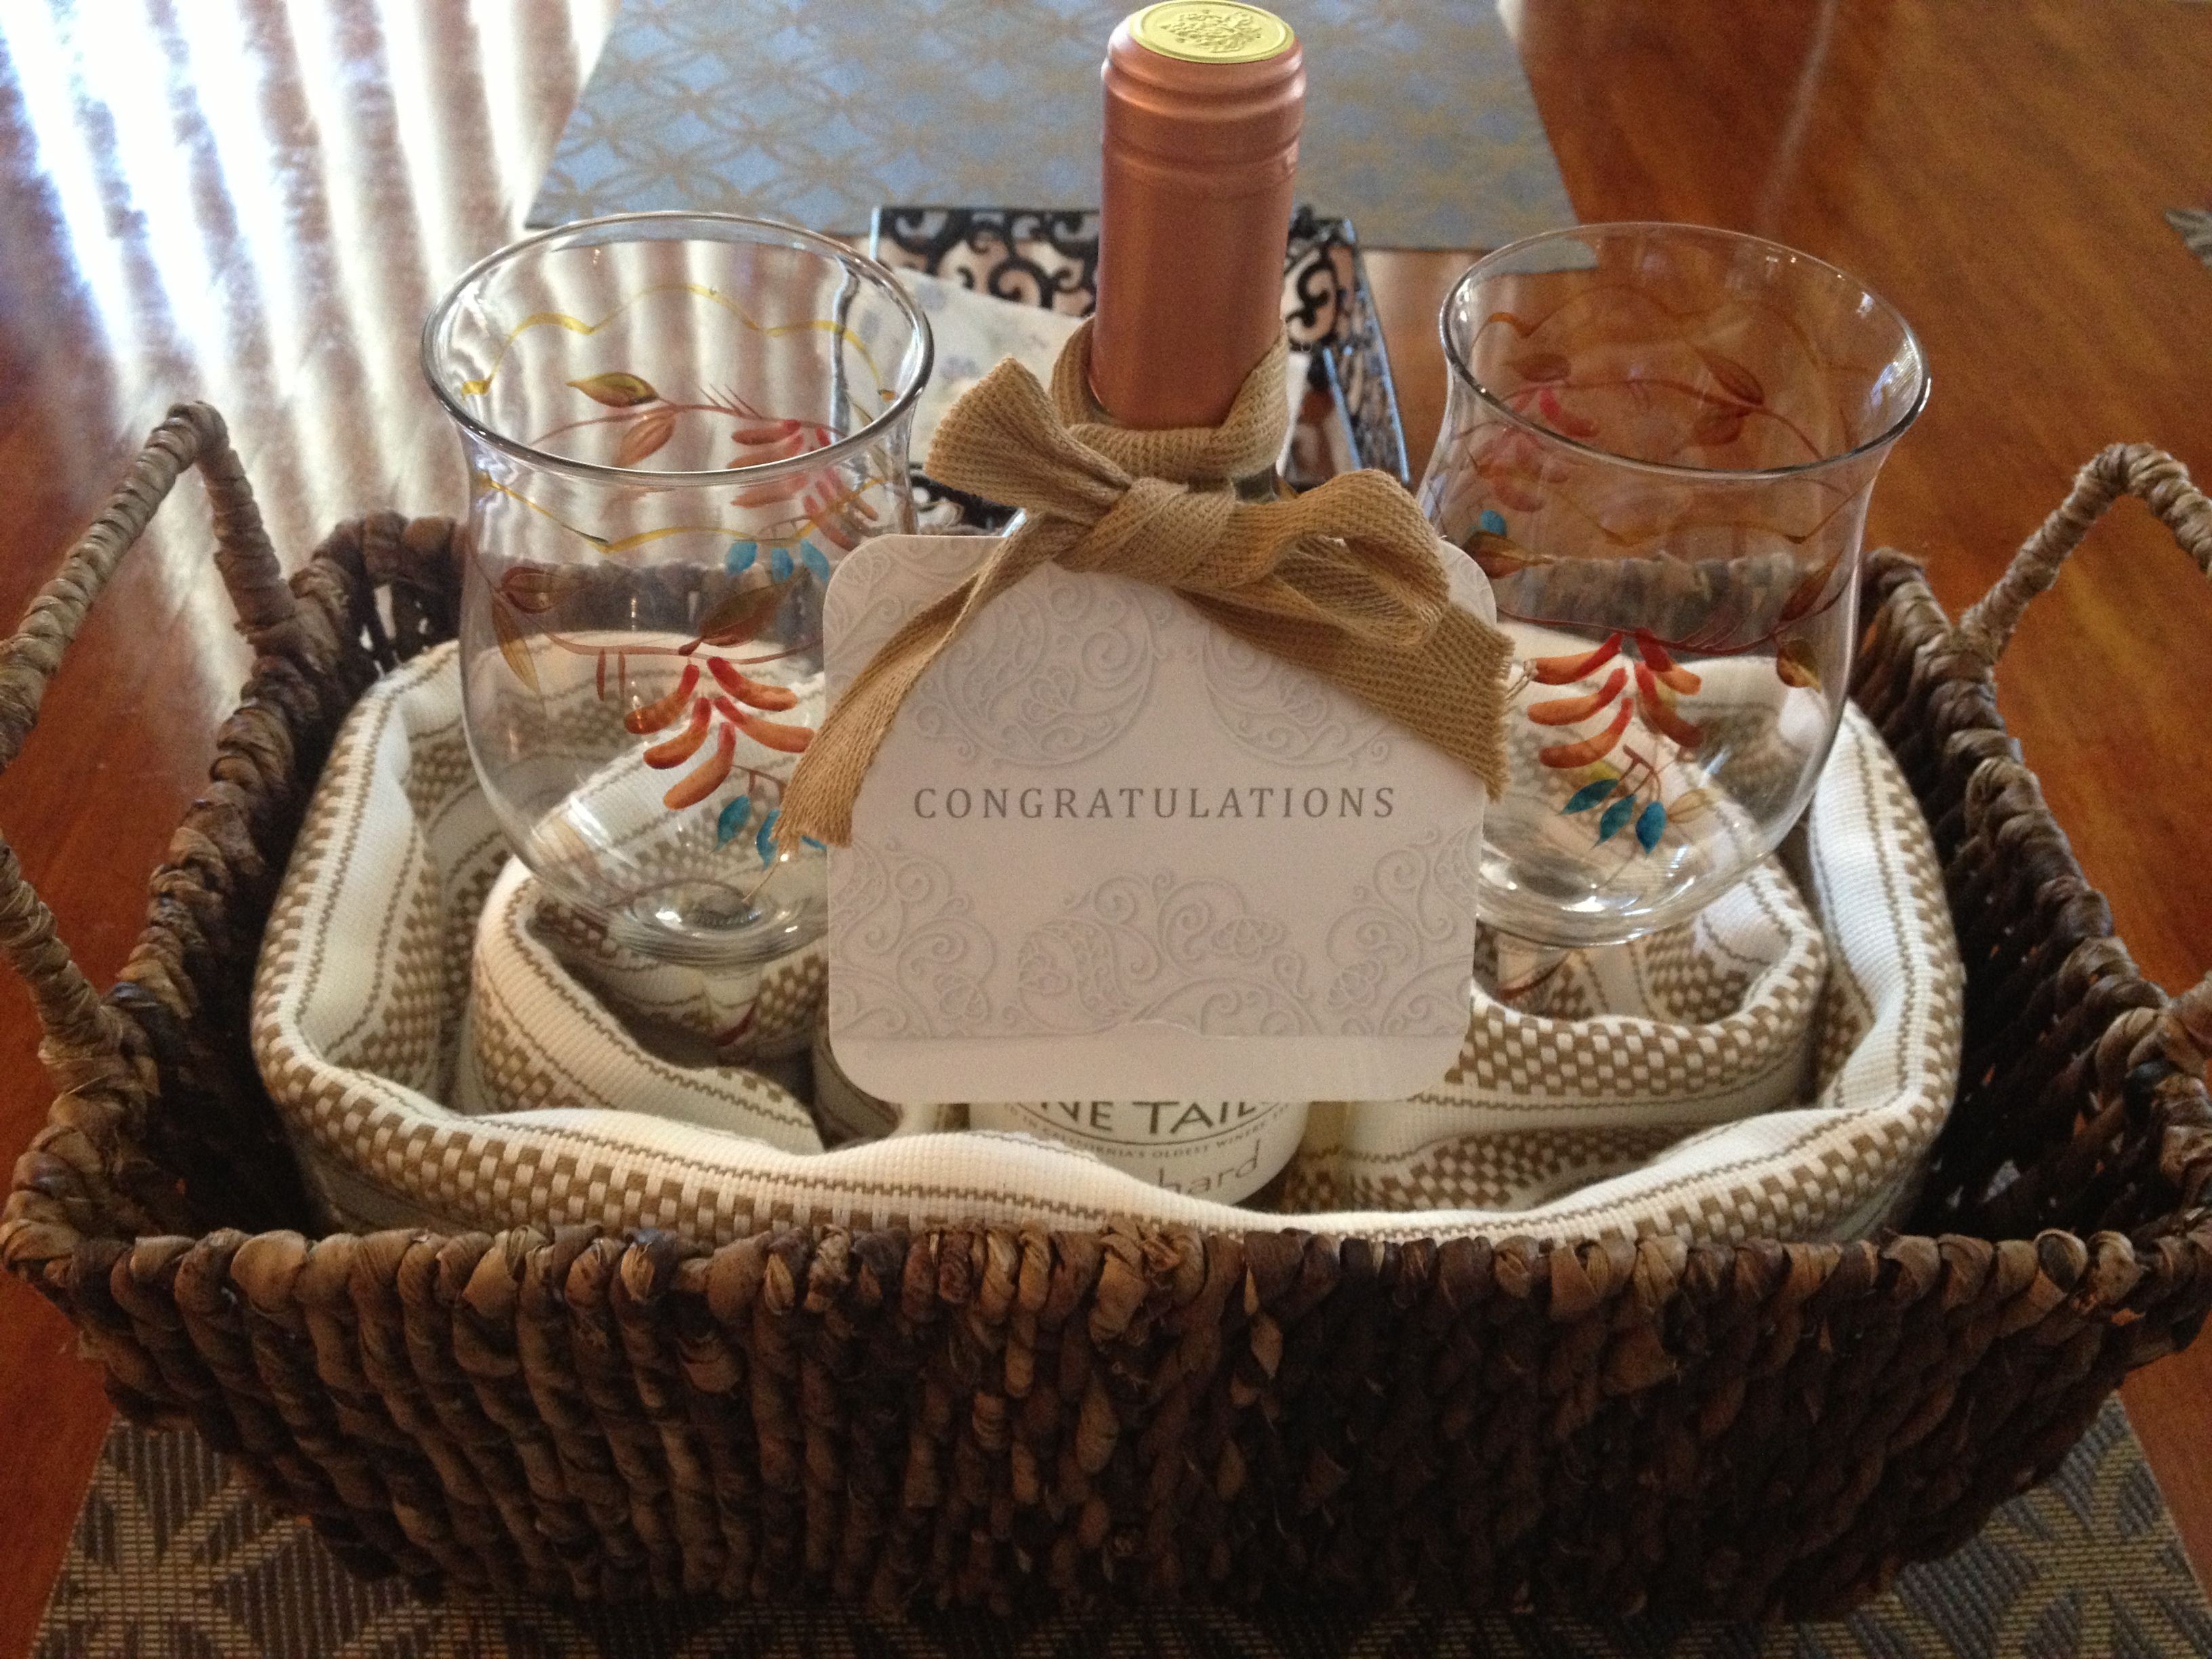 Homemade Housewarming Gift Ideas Diy House Warming Gift Wicker Basket Kitchen Towels 2